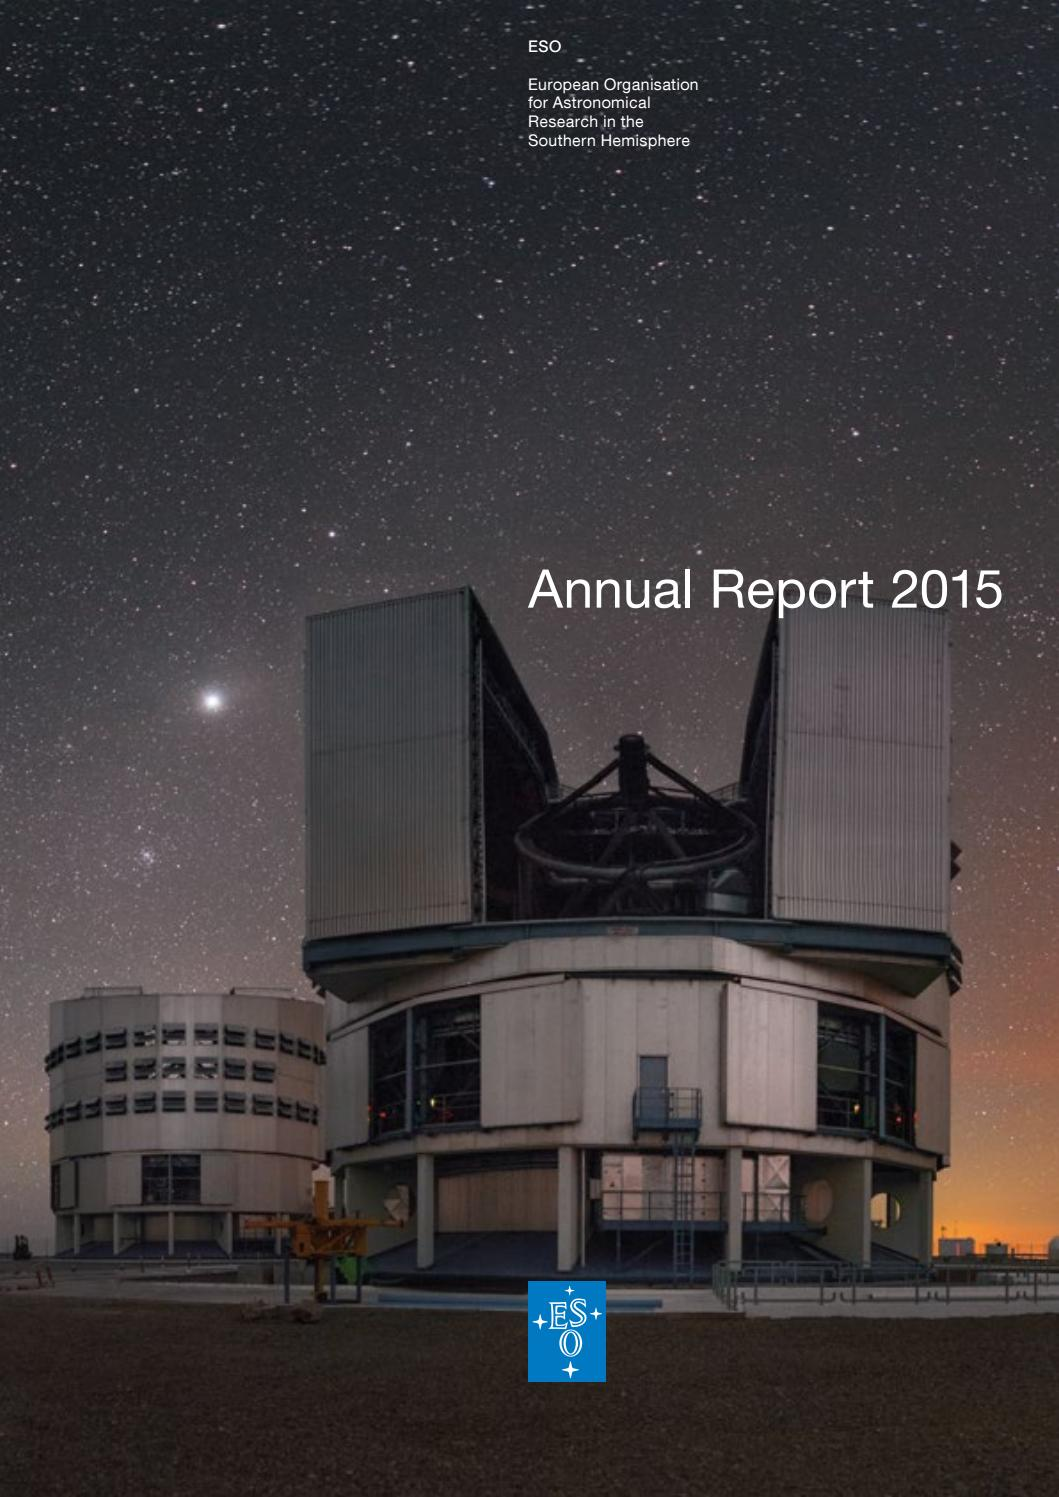 Container Haus Galileo Eso Annual Report 2015 By European Southern Observatory Issuu